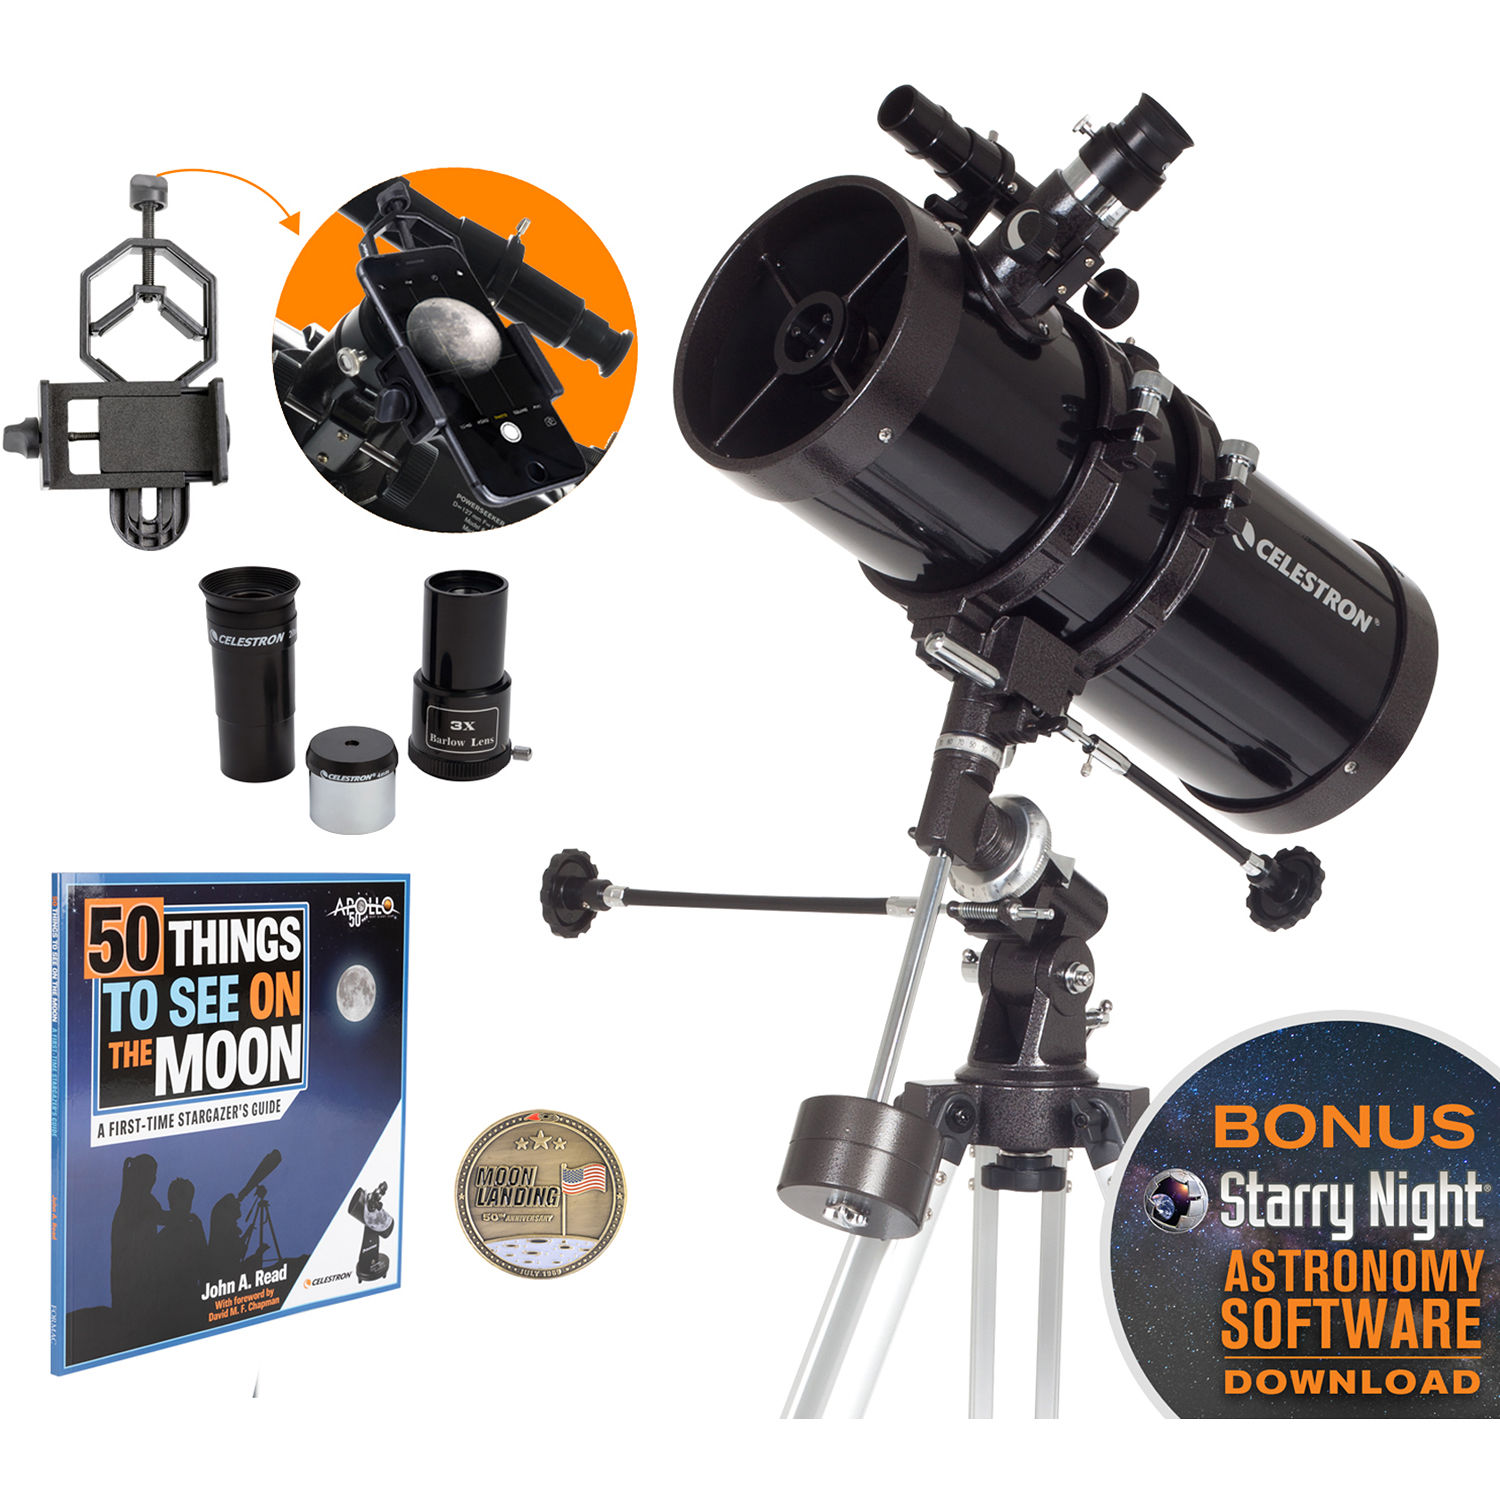 Celestron 127EQ PowerSeeker Review - Not Recommended